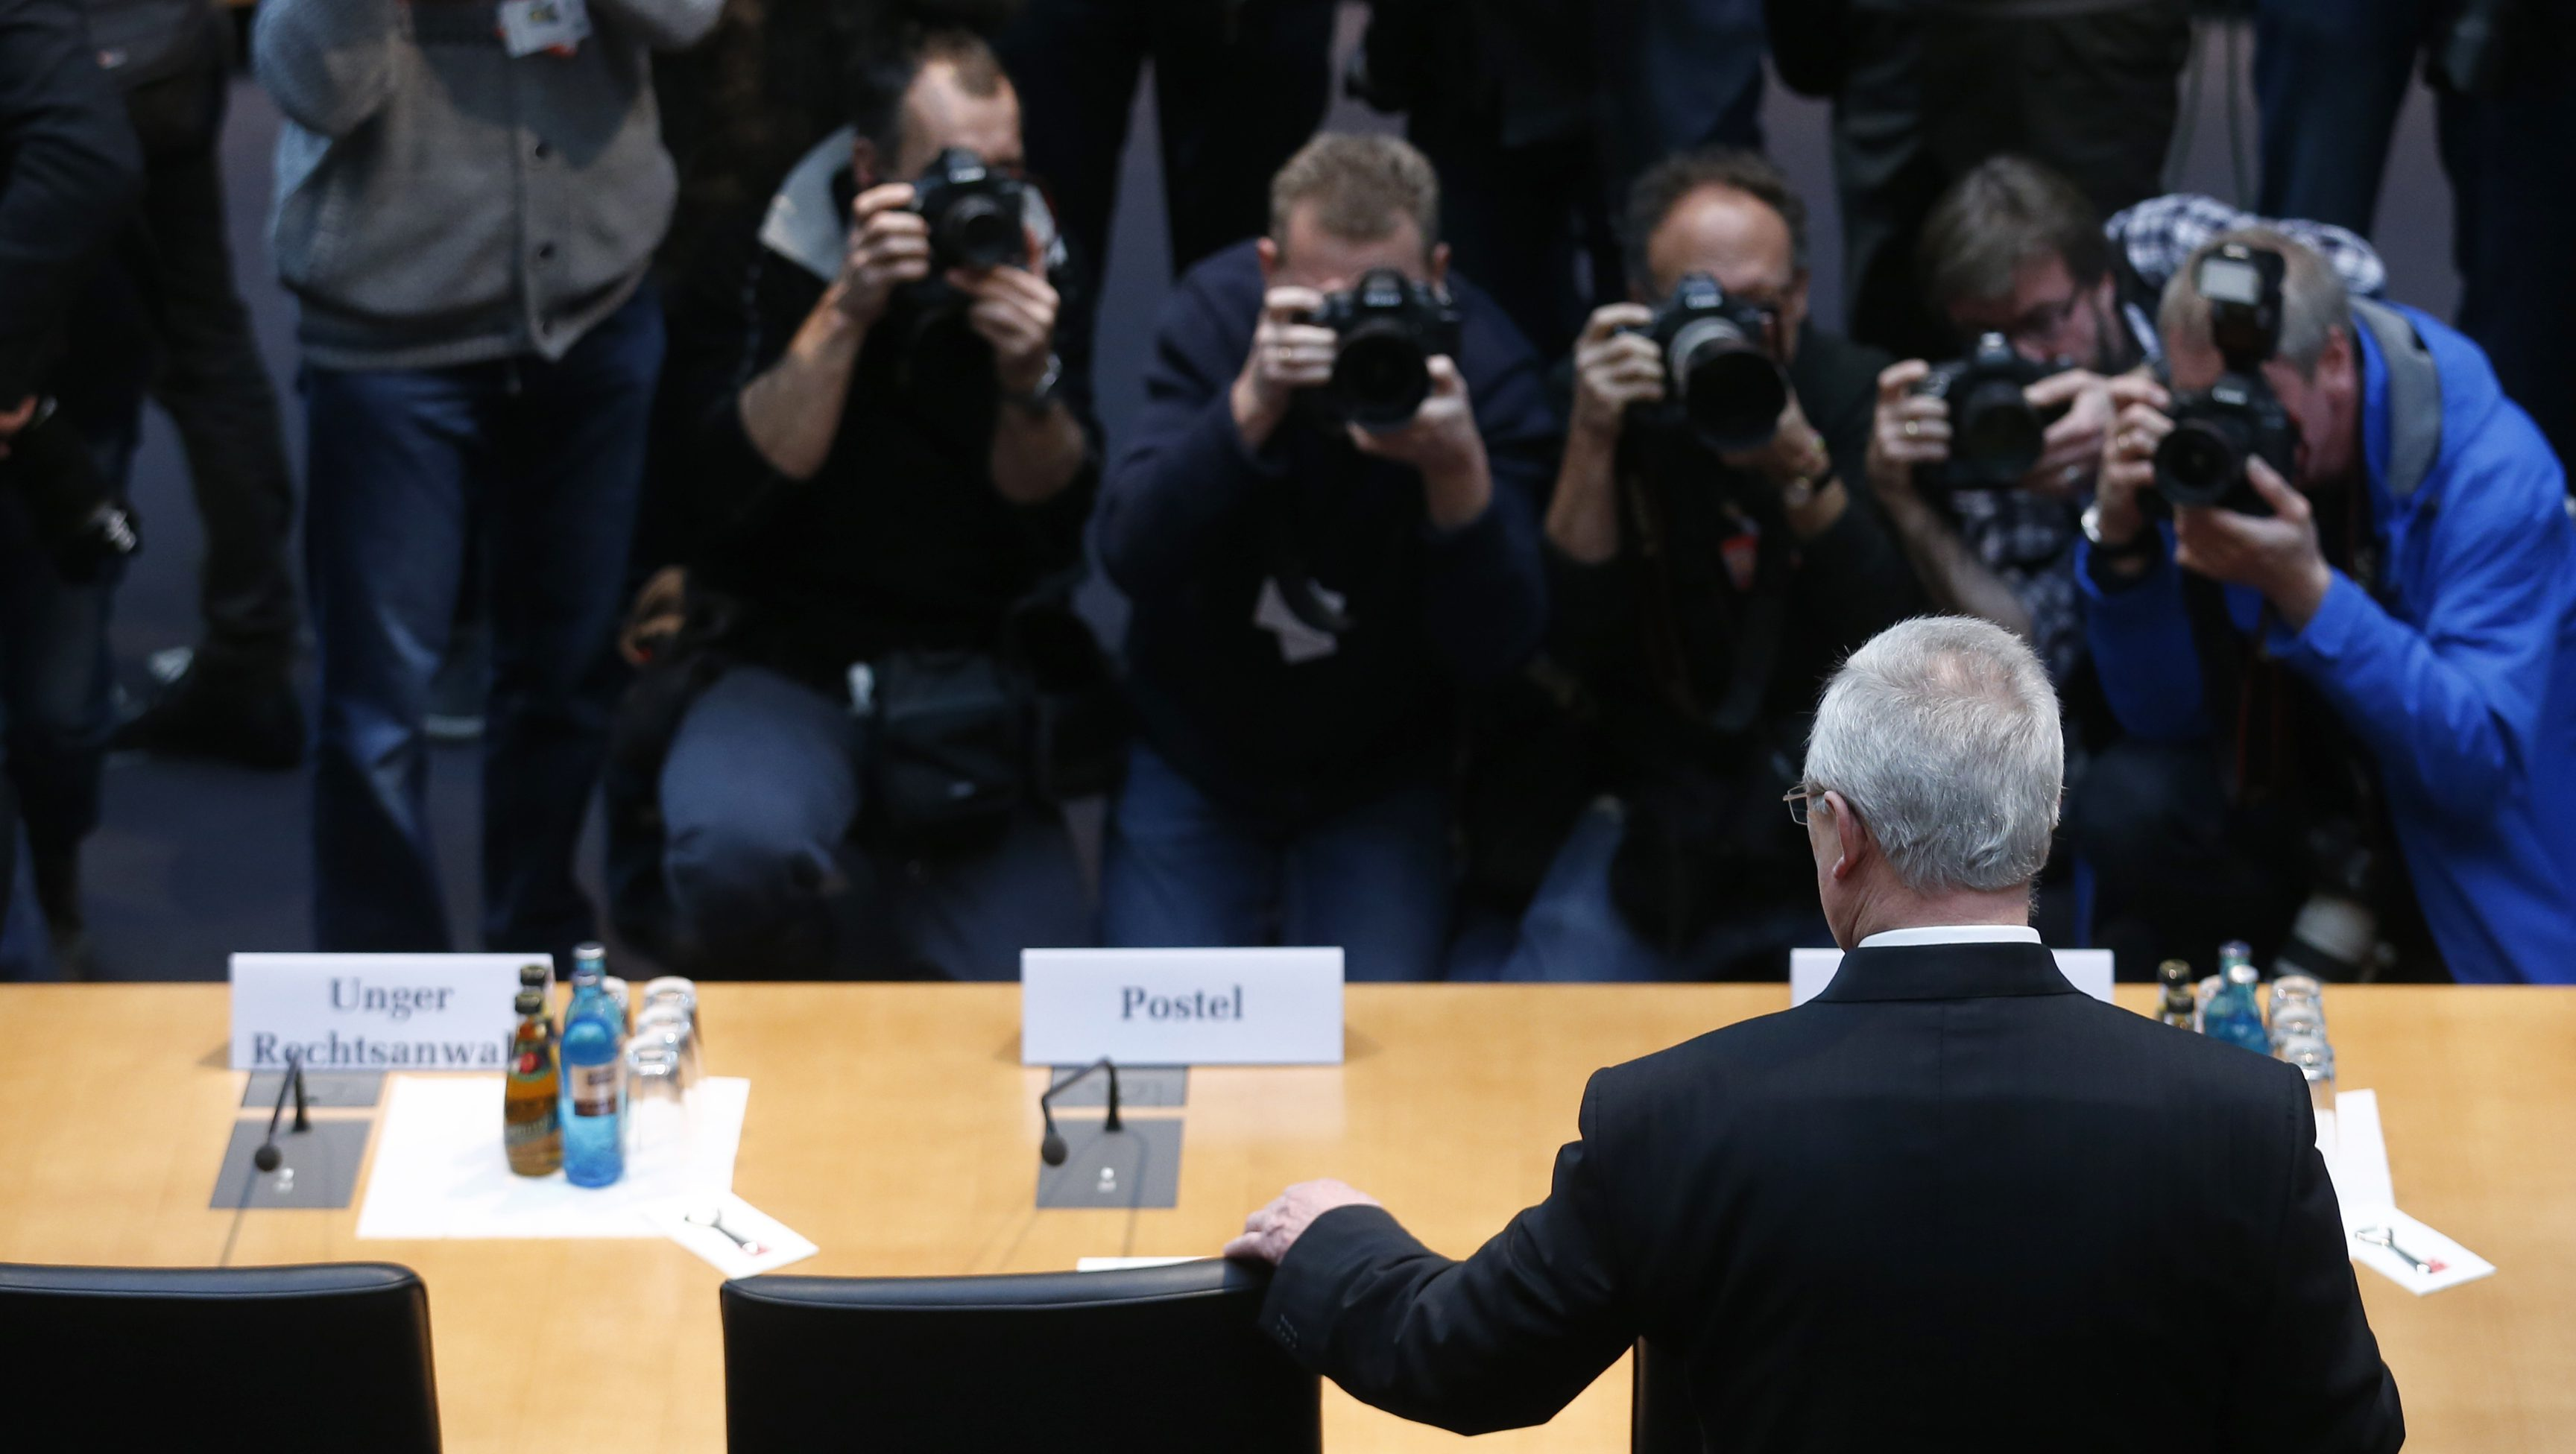 Former Volkswagen chief executive Martin Winterkorn arrives to testify to a German parliamentary committee on the carmaker's emissions scandal in Berlin, Germany, January 19, 2017.